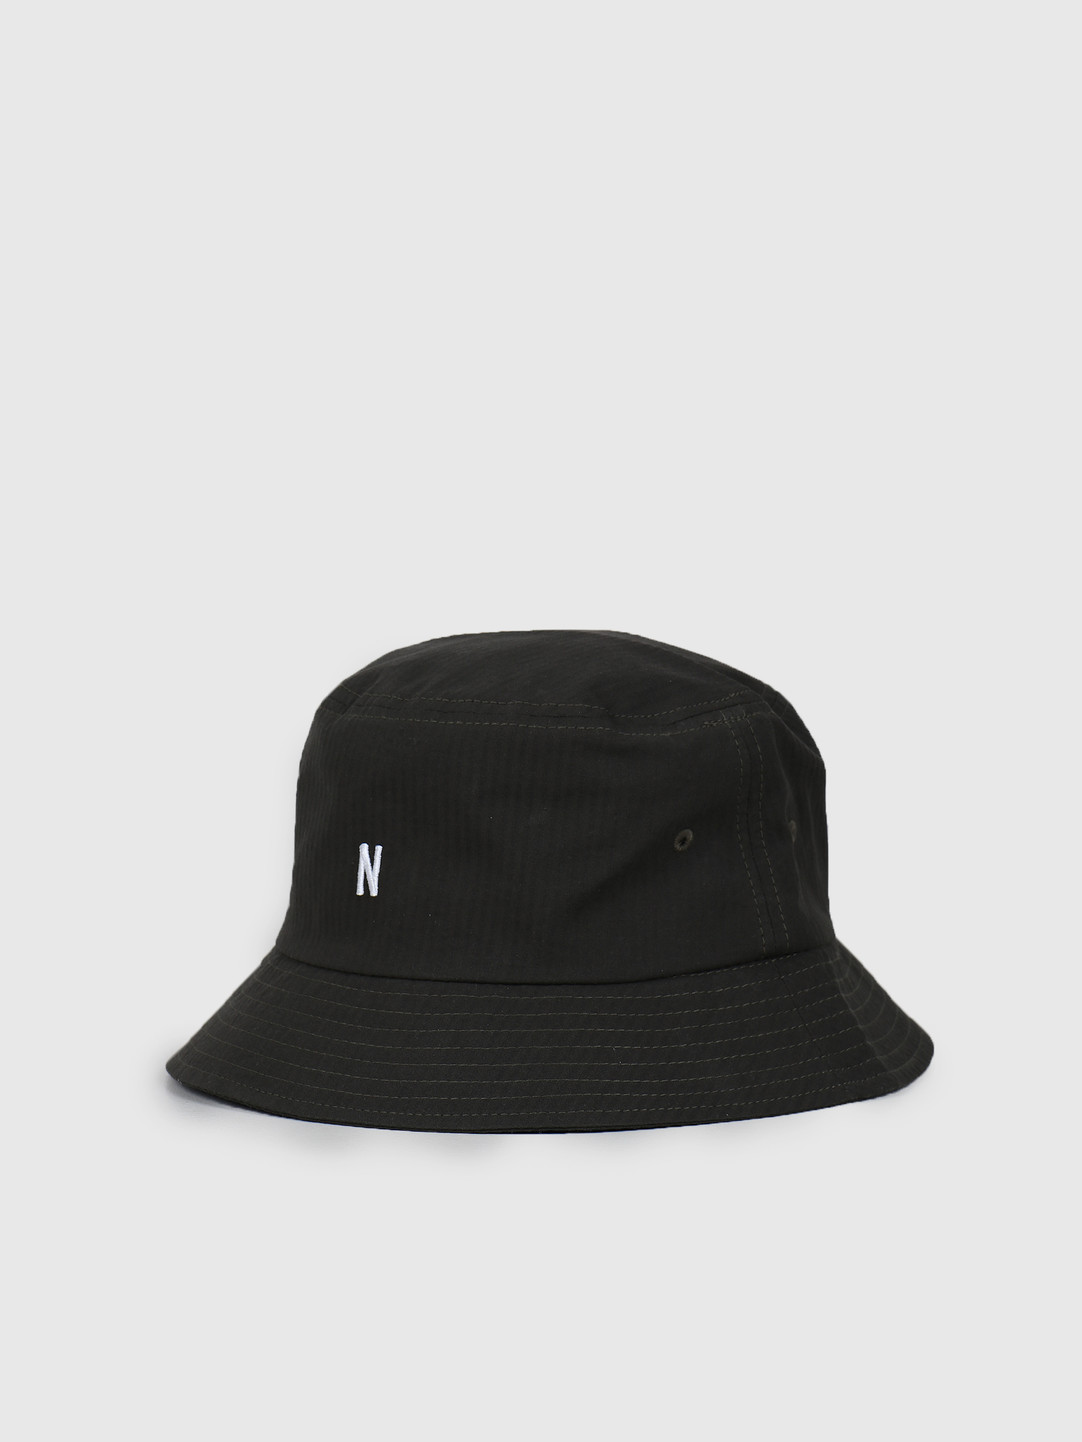 Norse Projects Norse Projects Seersucker Bucket Hat Beech Green N80-0024-8109